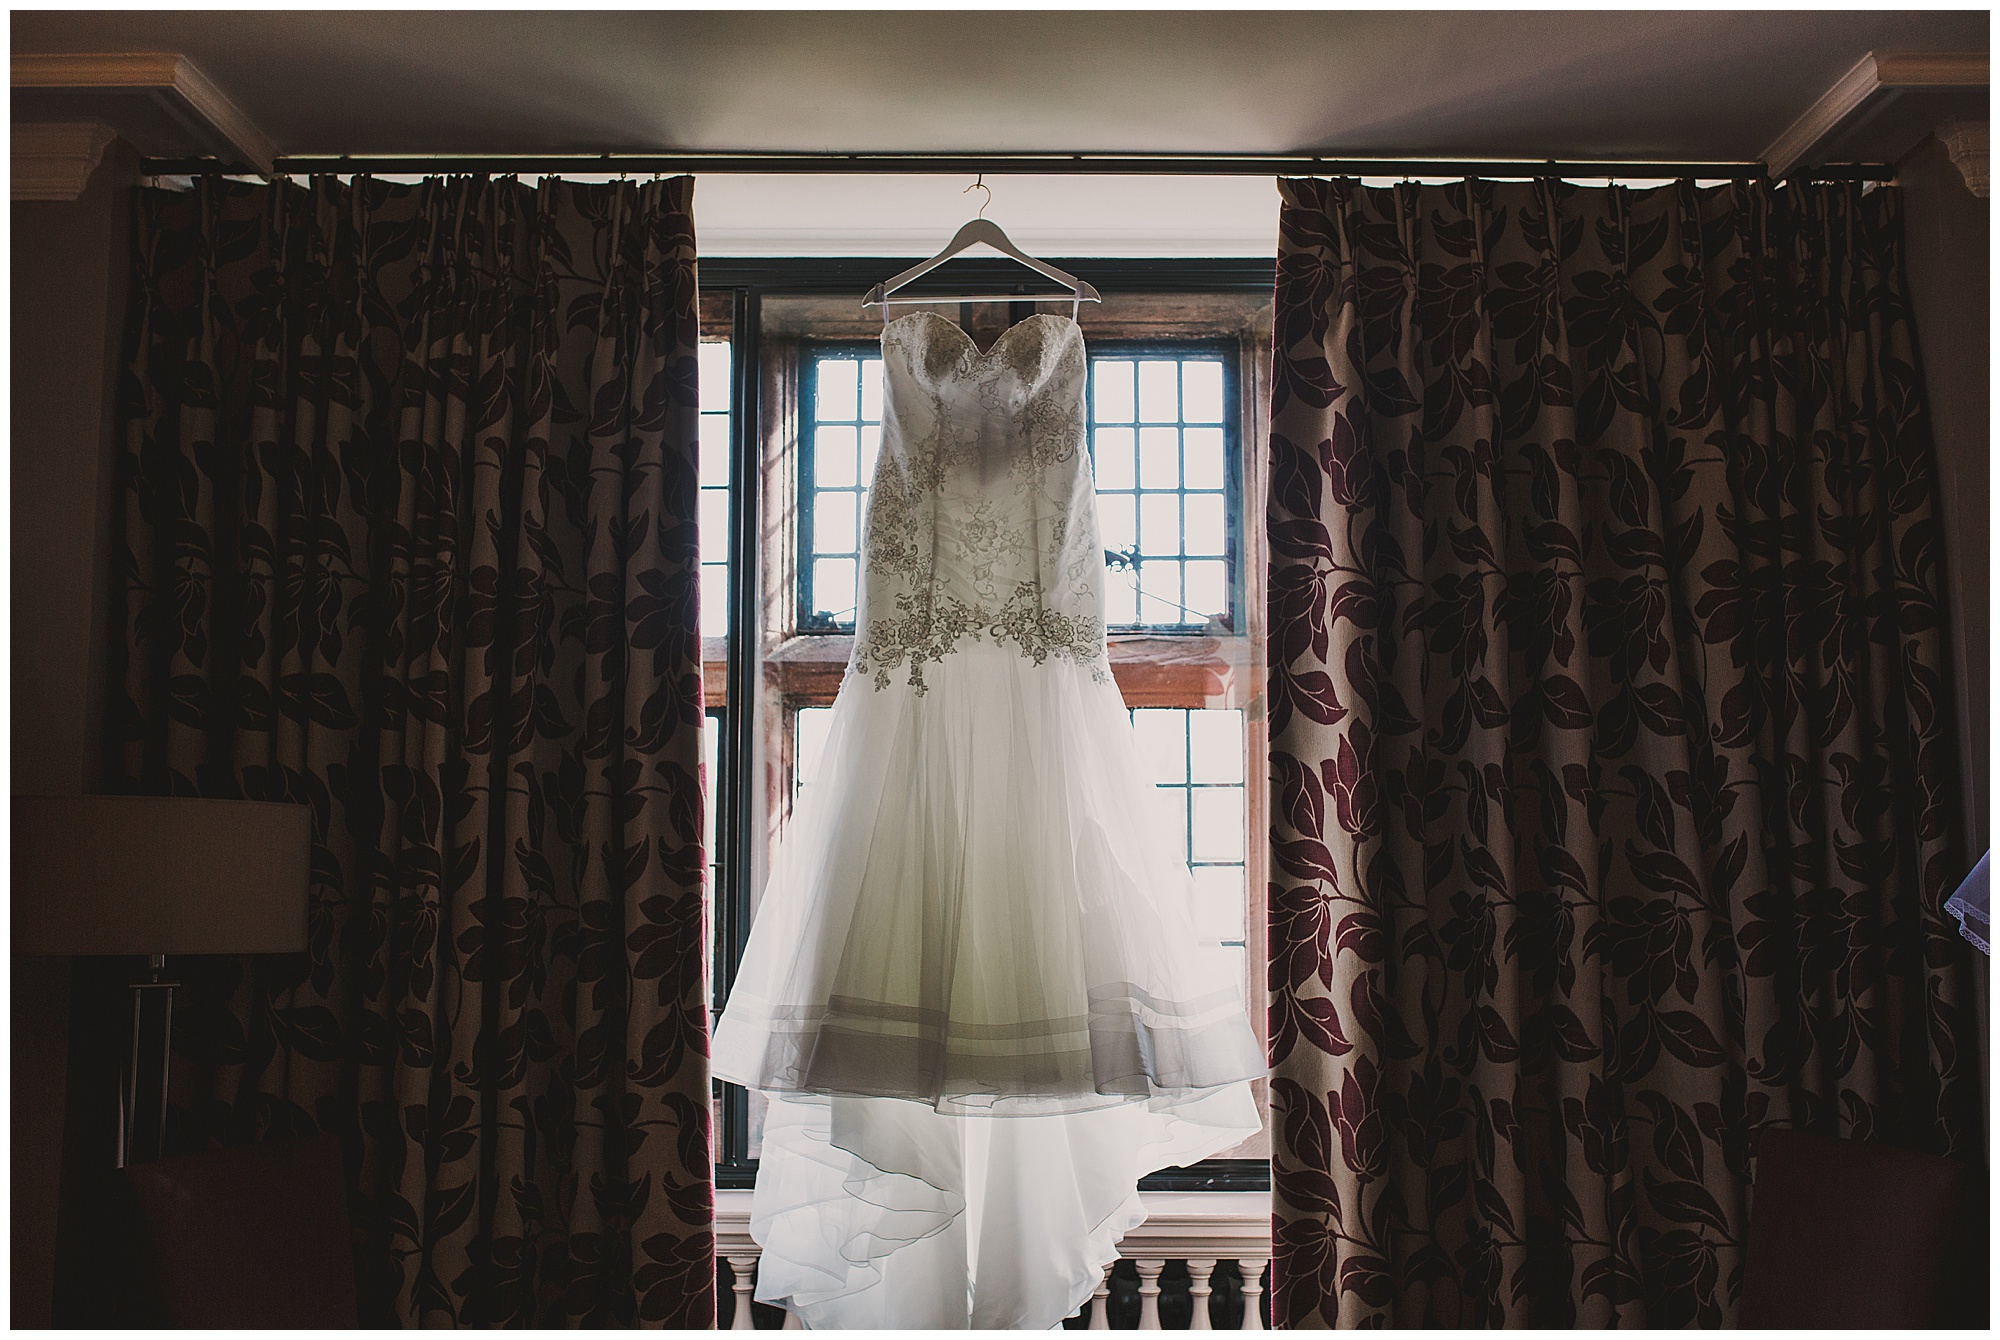 hanging the wedding gown